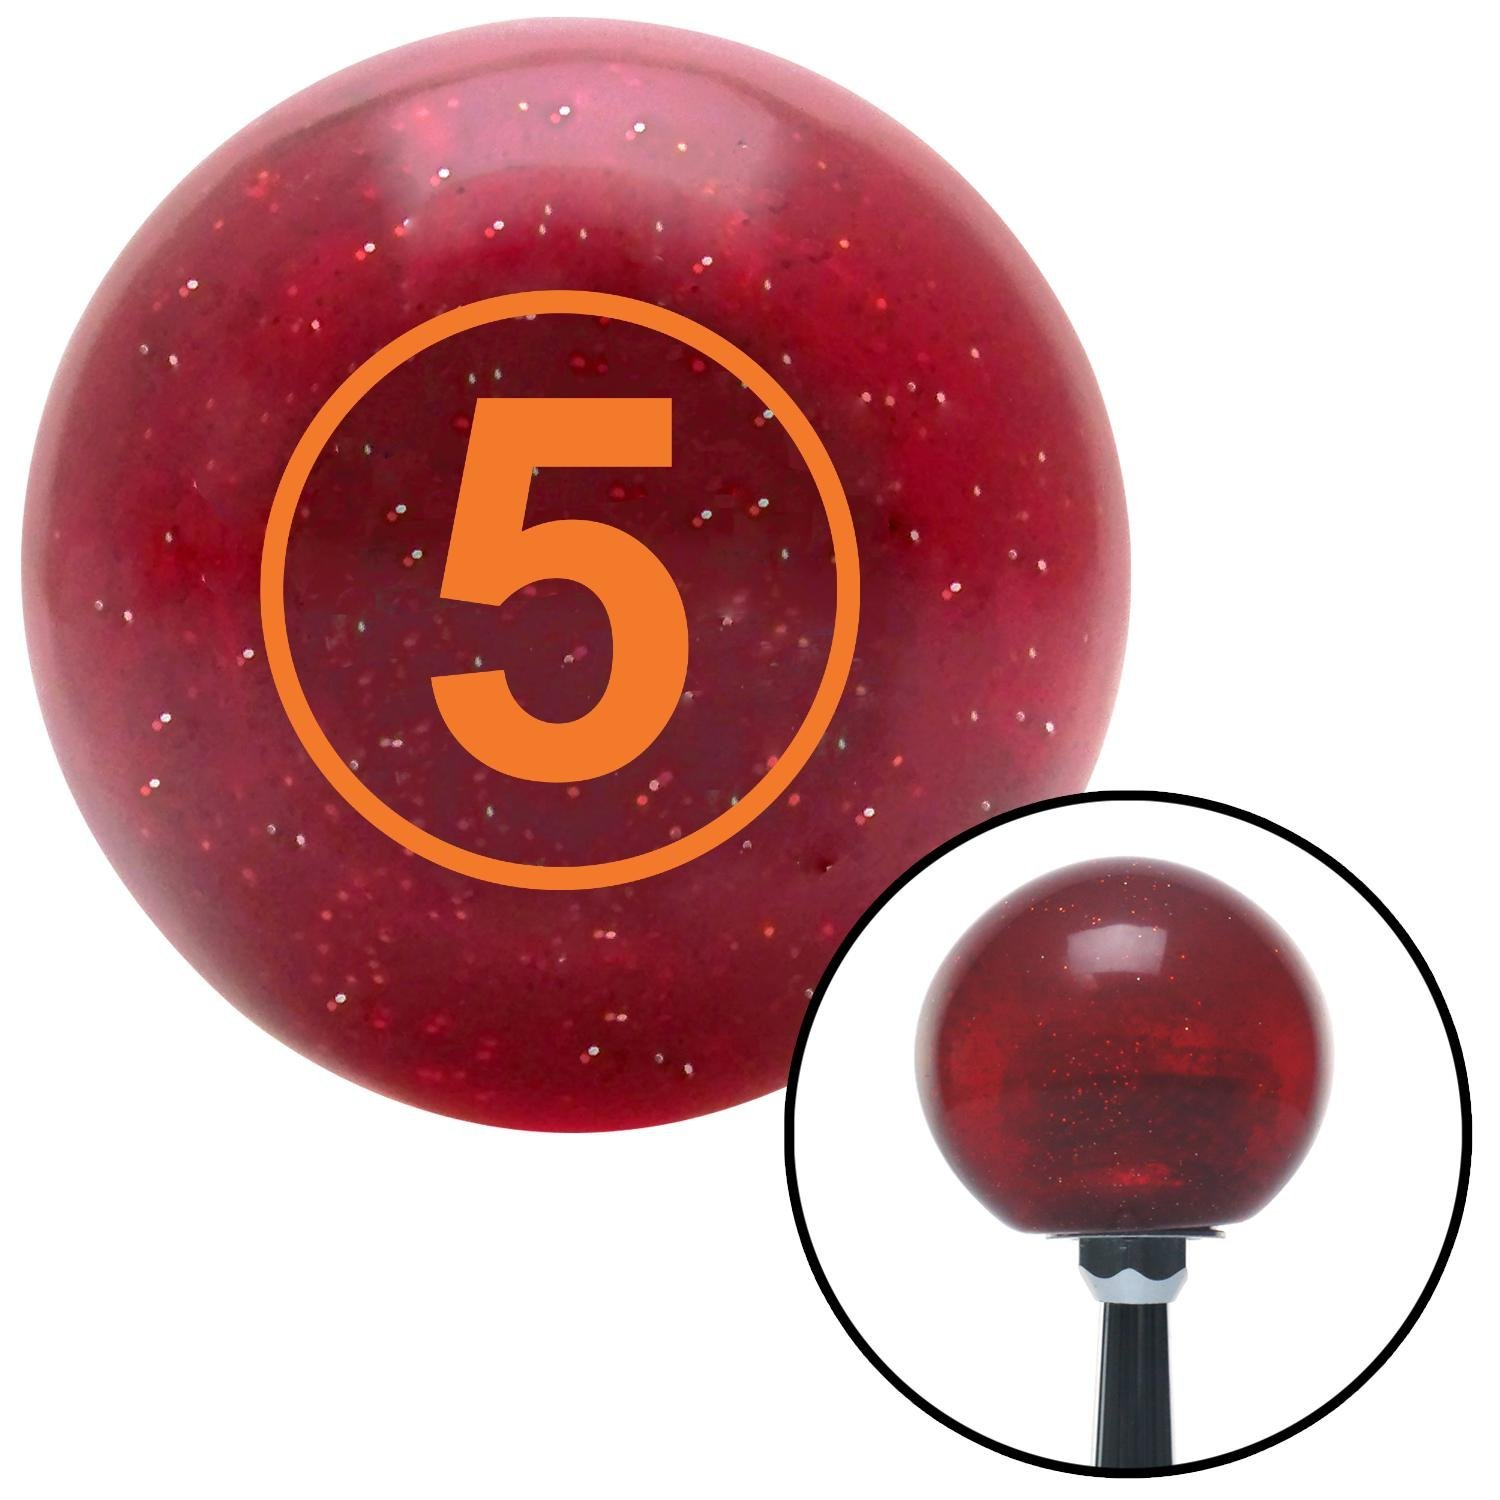 American Shifter 47492 Red Metal Flake Shift Knob with 16mm x 1.5 Insert Orange Ball #5